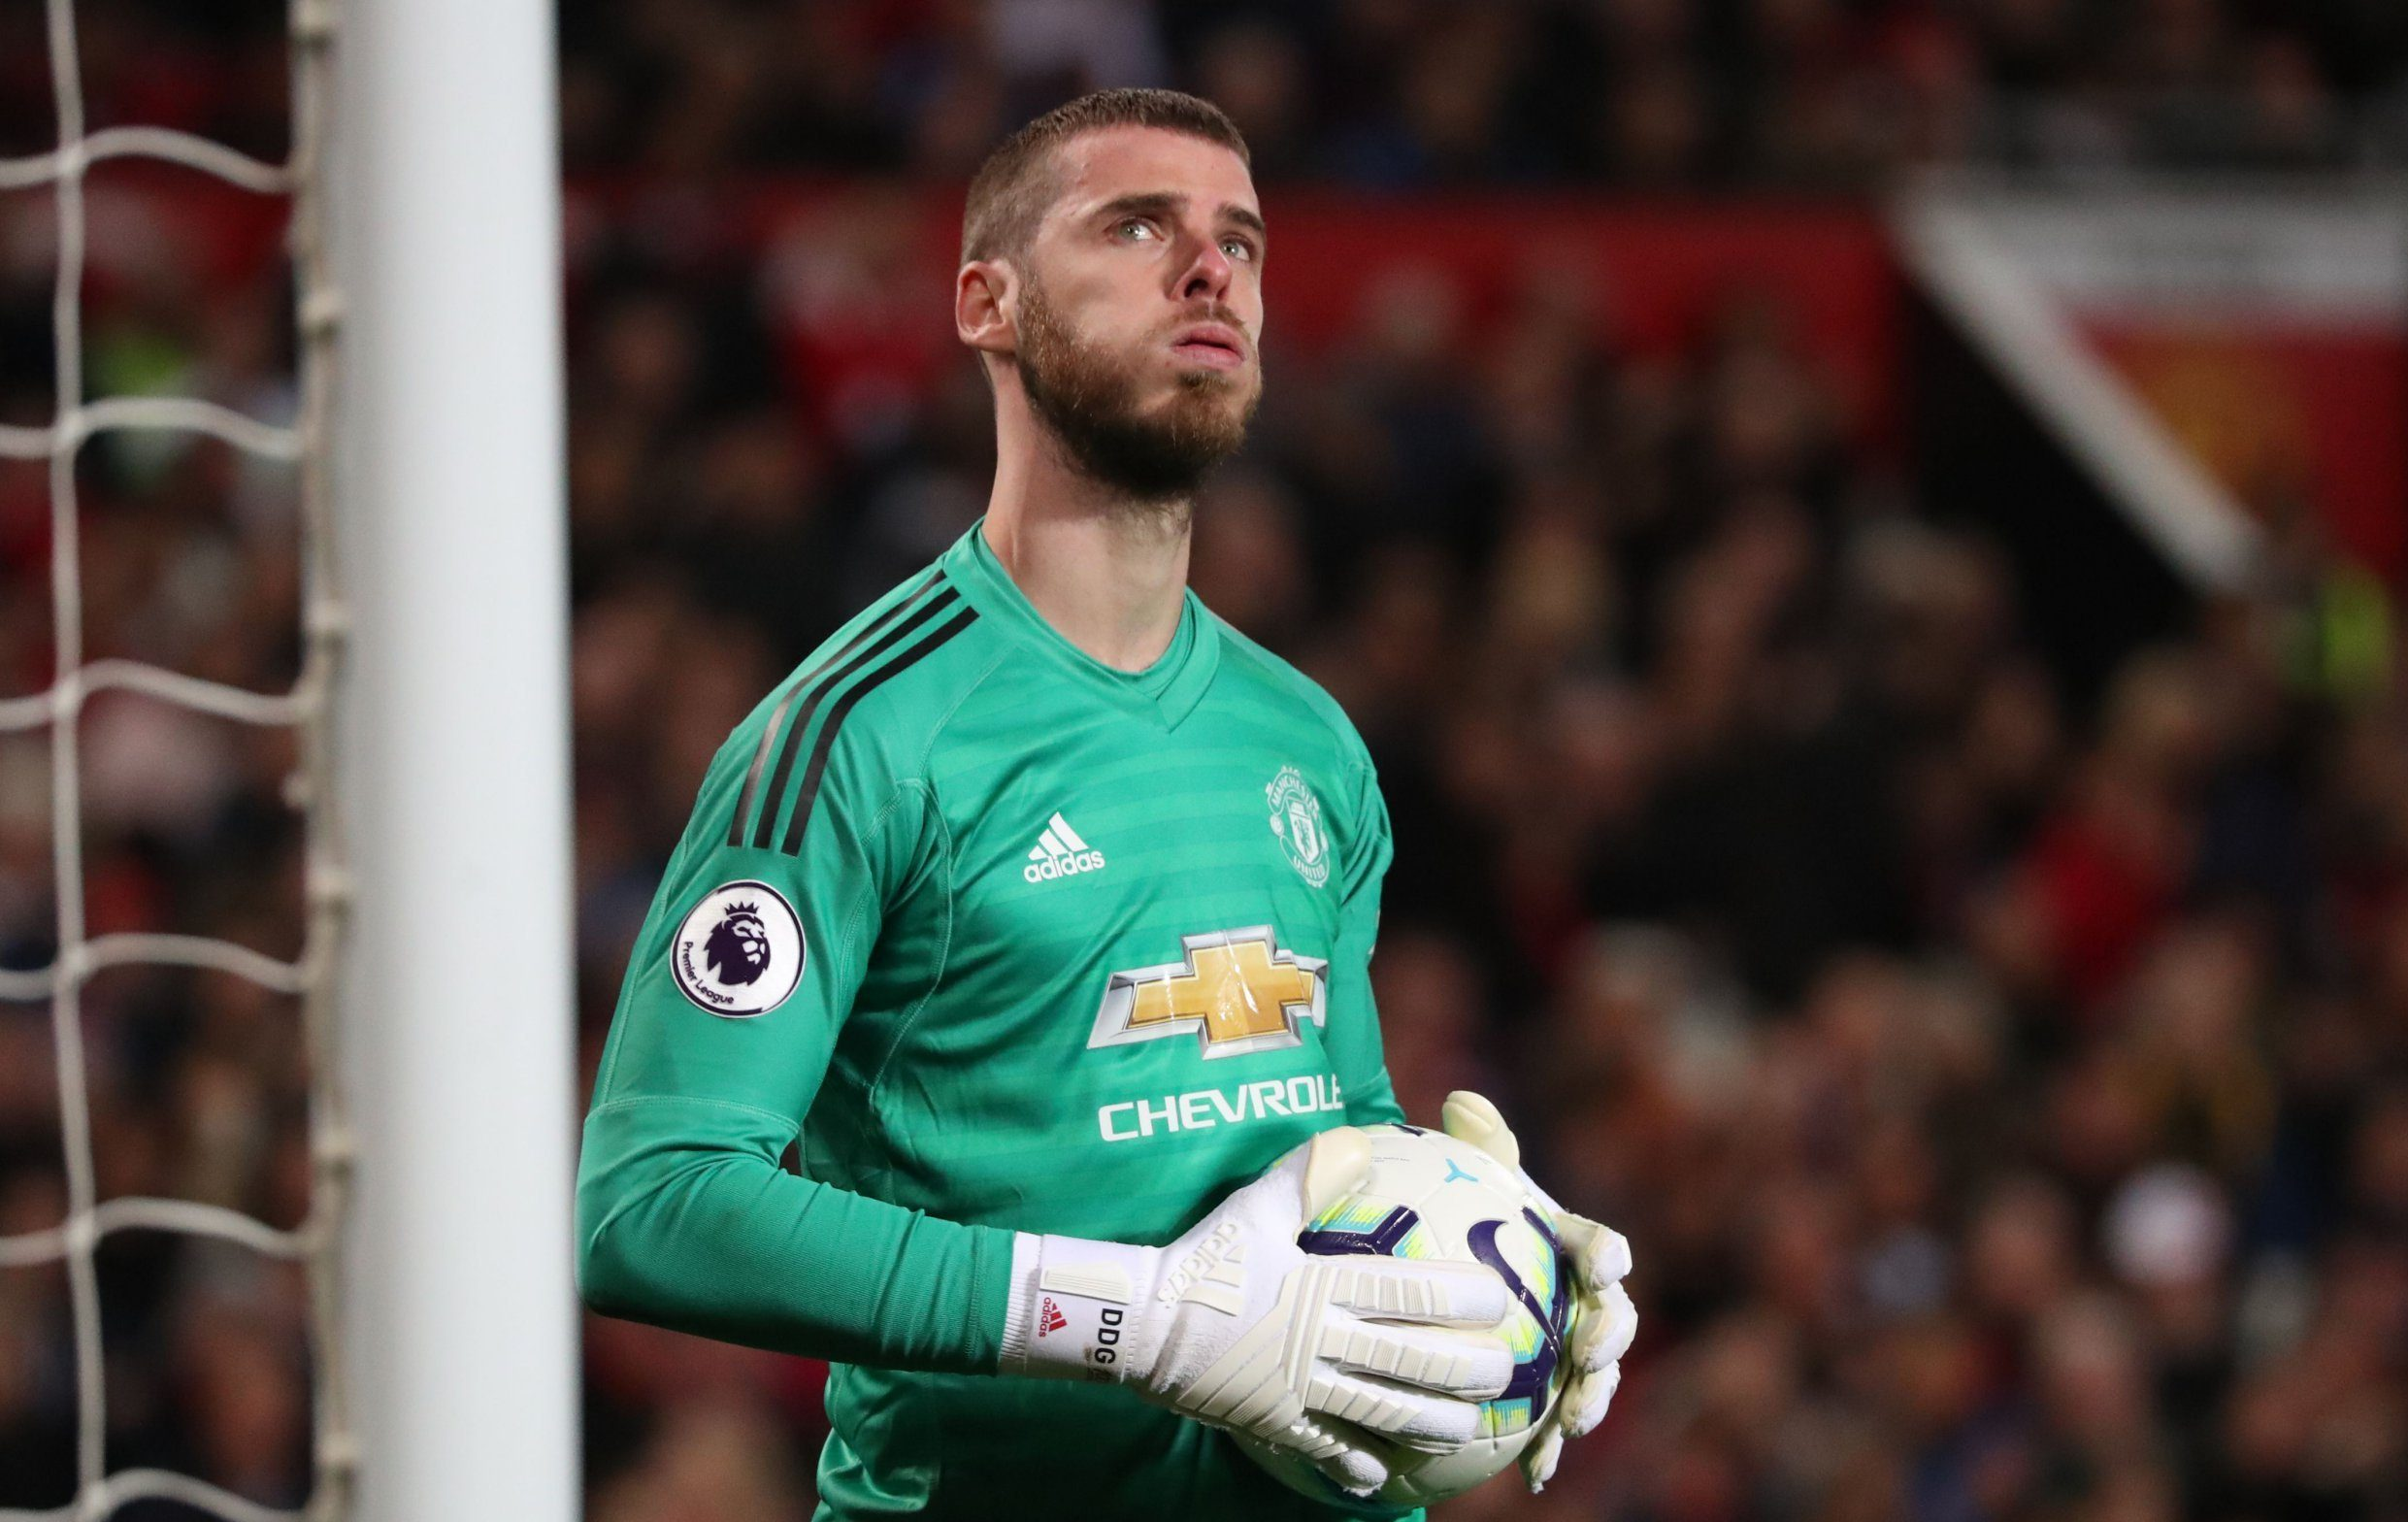 Ole Gunnar Solskjaer speaks out on David De Gea's mistakes after Manchester United's defeat to Man City